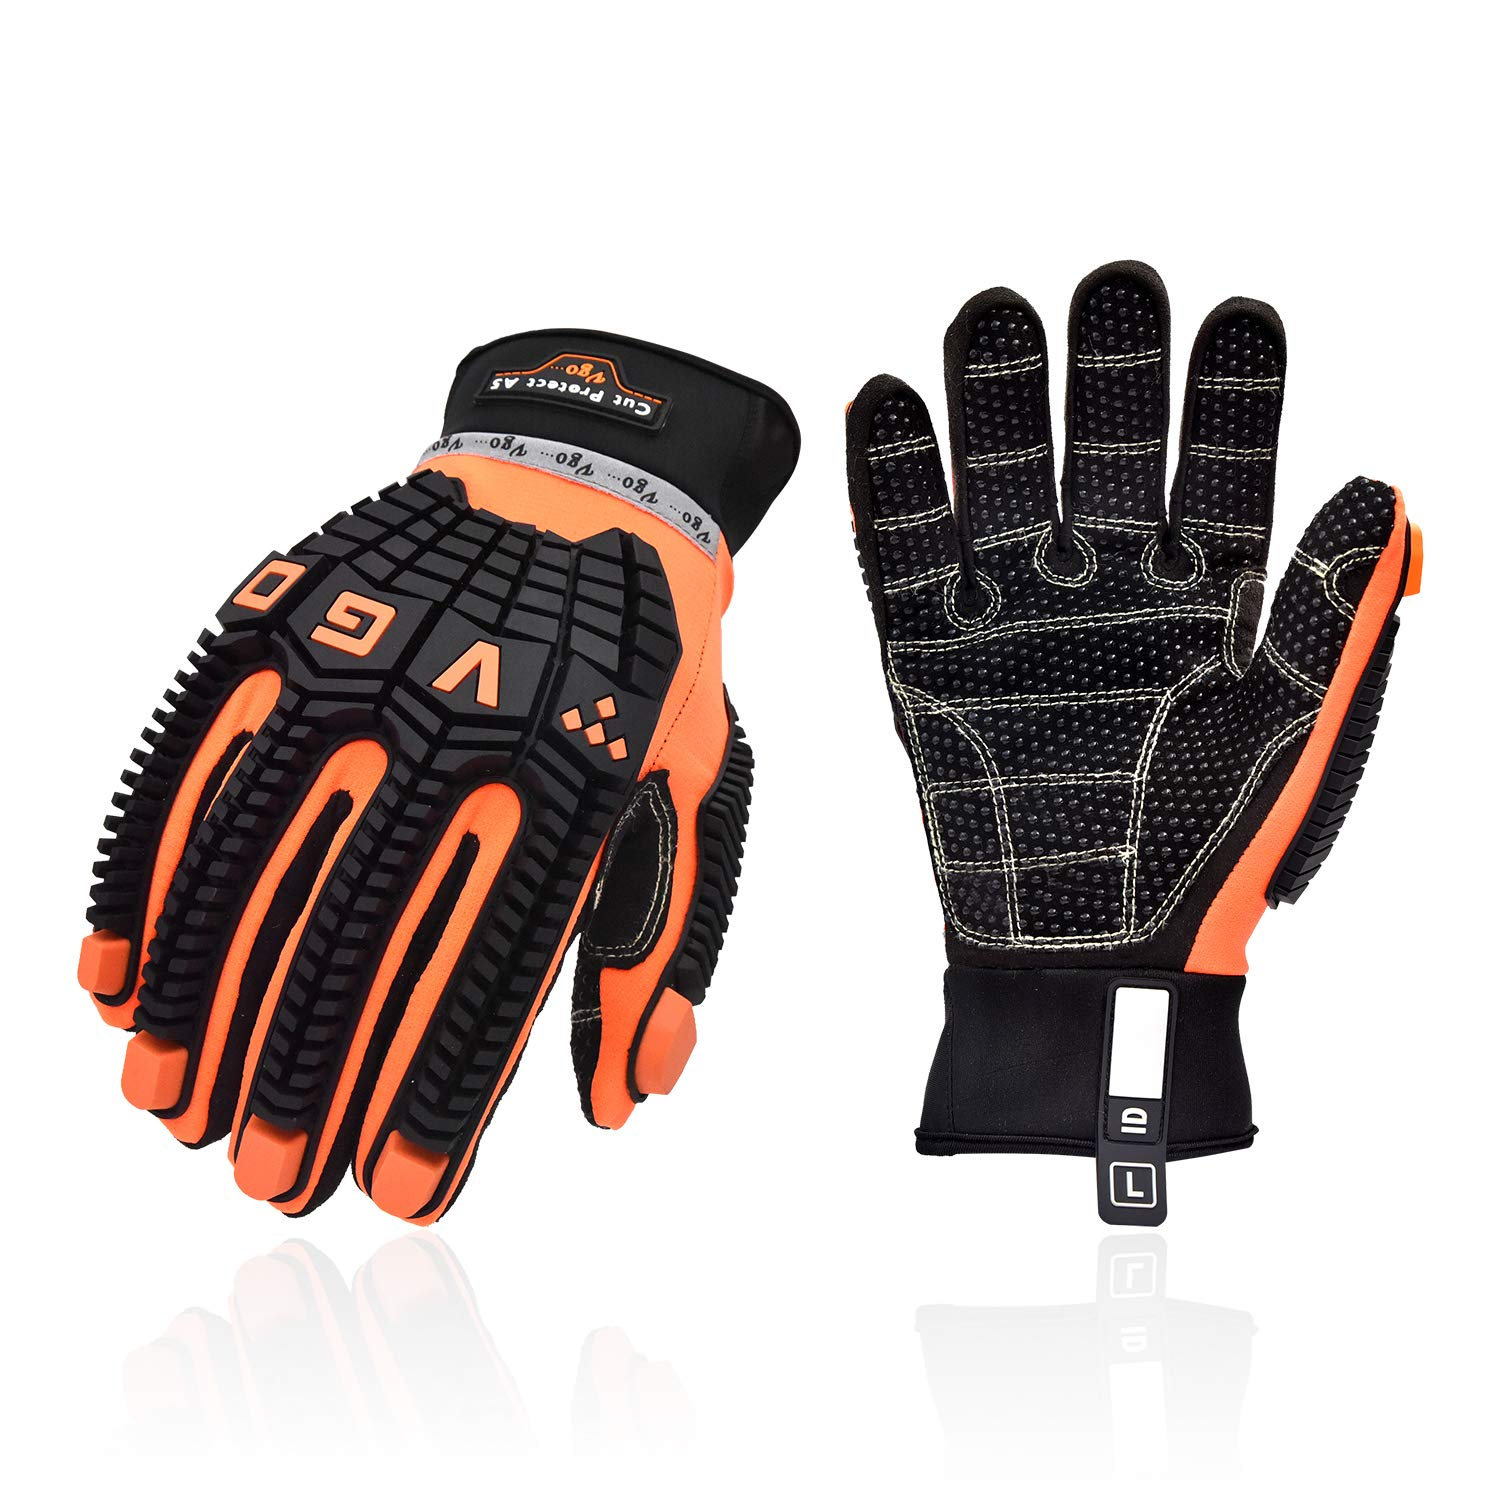 Vgo Offshore Anti Vibration Oil-Proof Cut Resistant ANSI A5 Cut-Resistance Impact Protection Water-repellent Safety Synthetic Leather Work Gloves (Size L, Orange, SL9678HY)